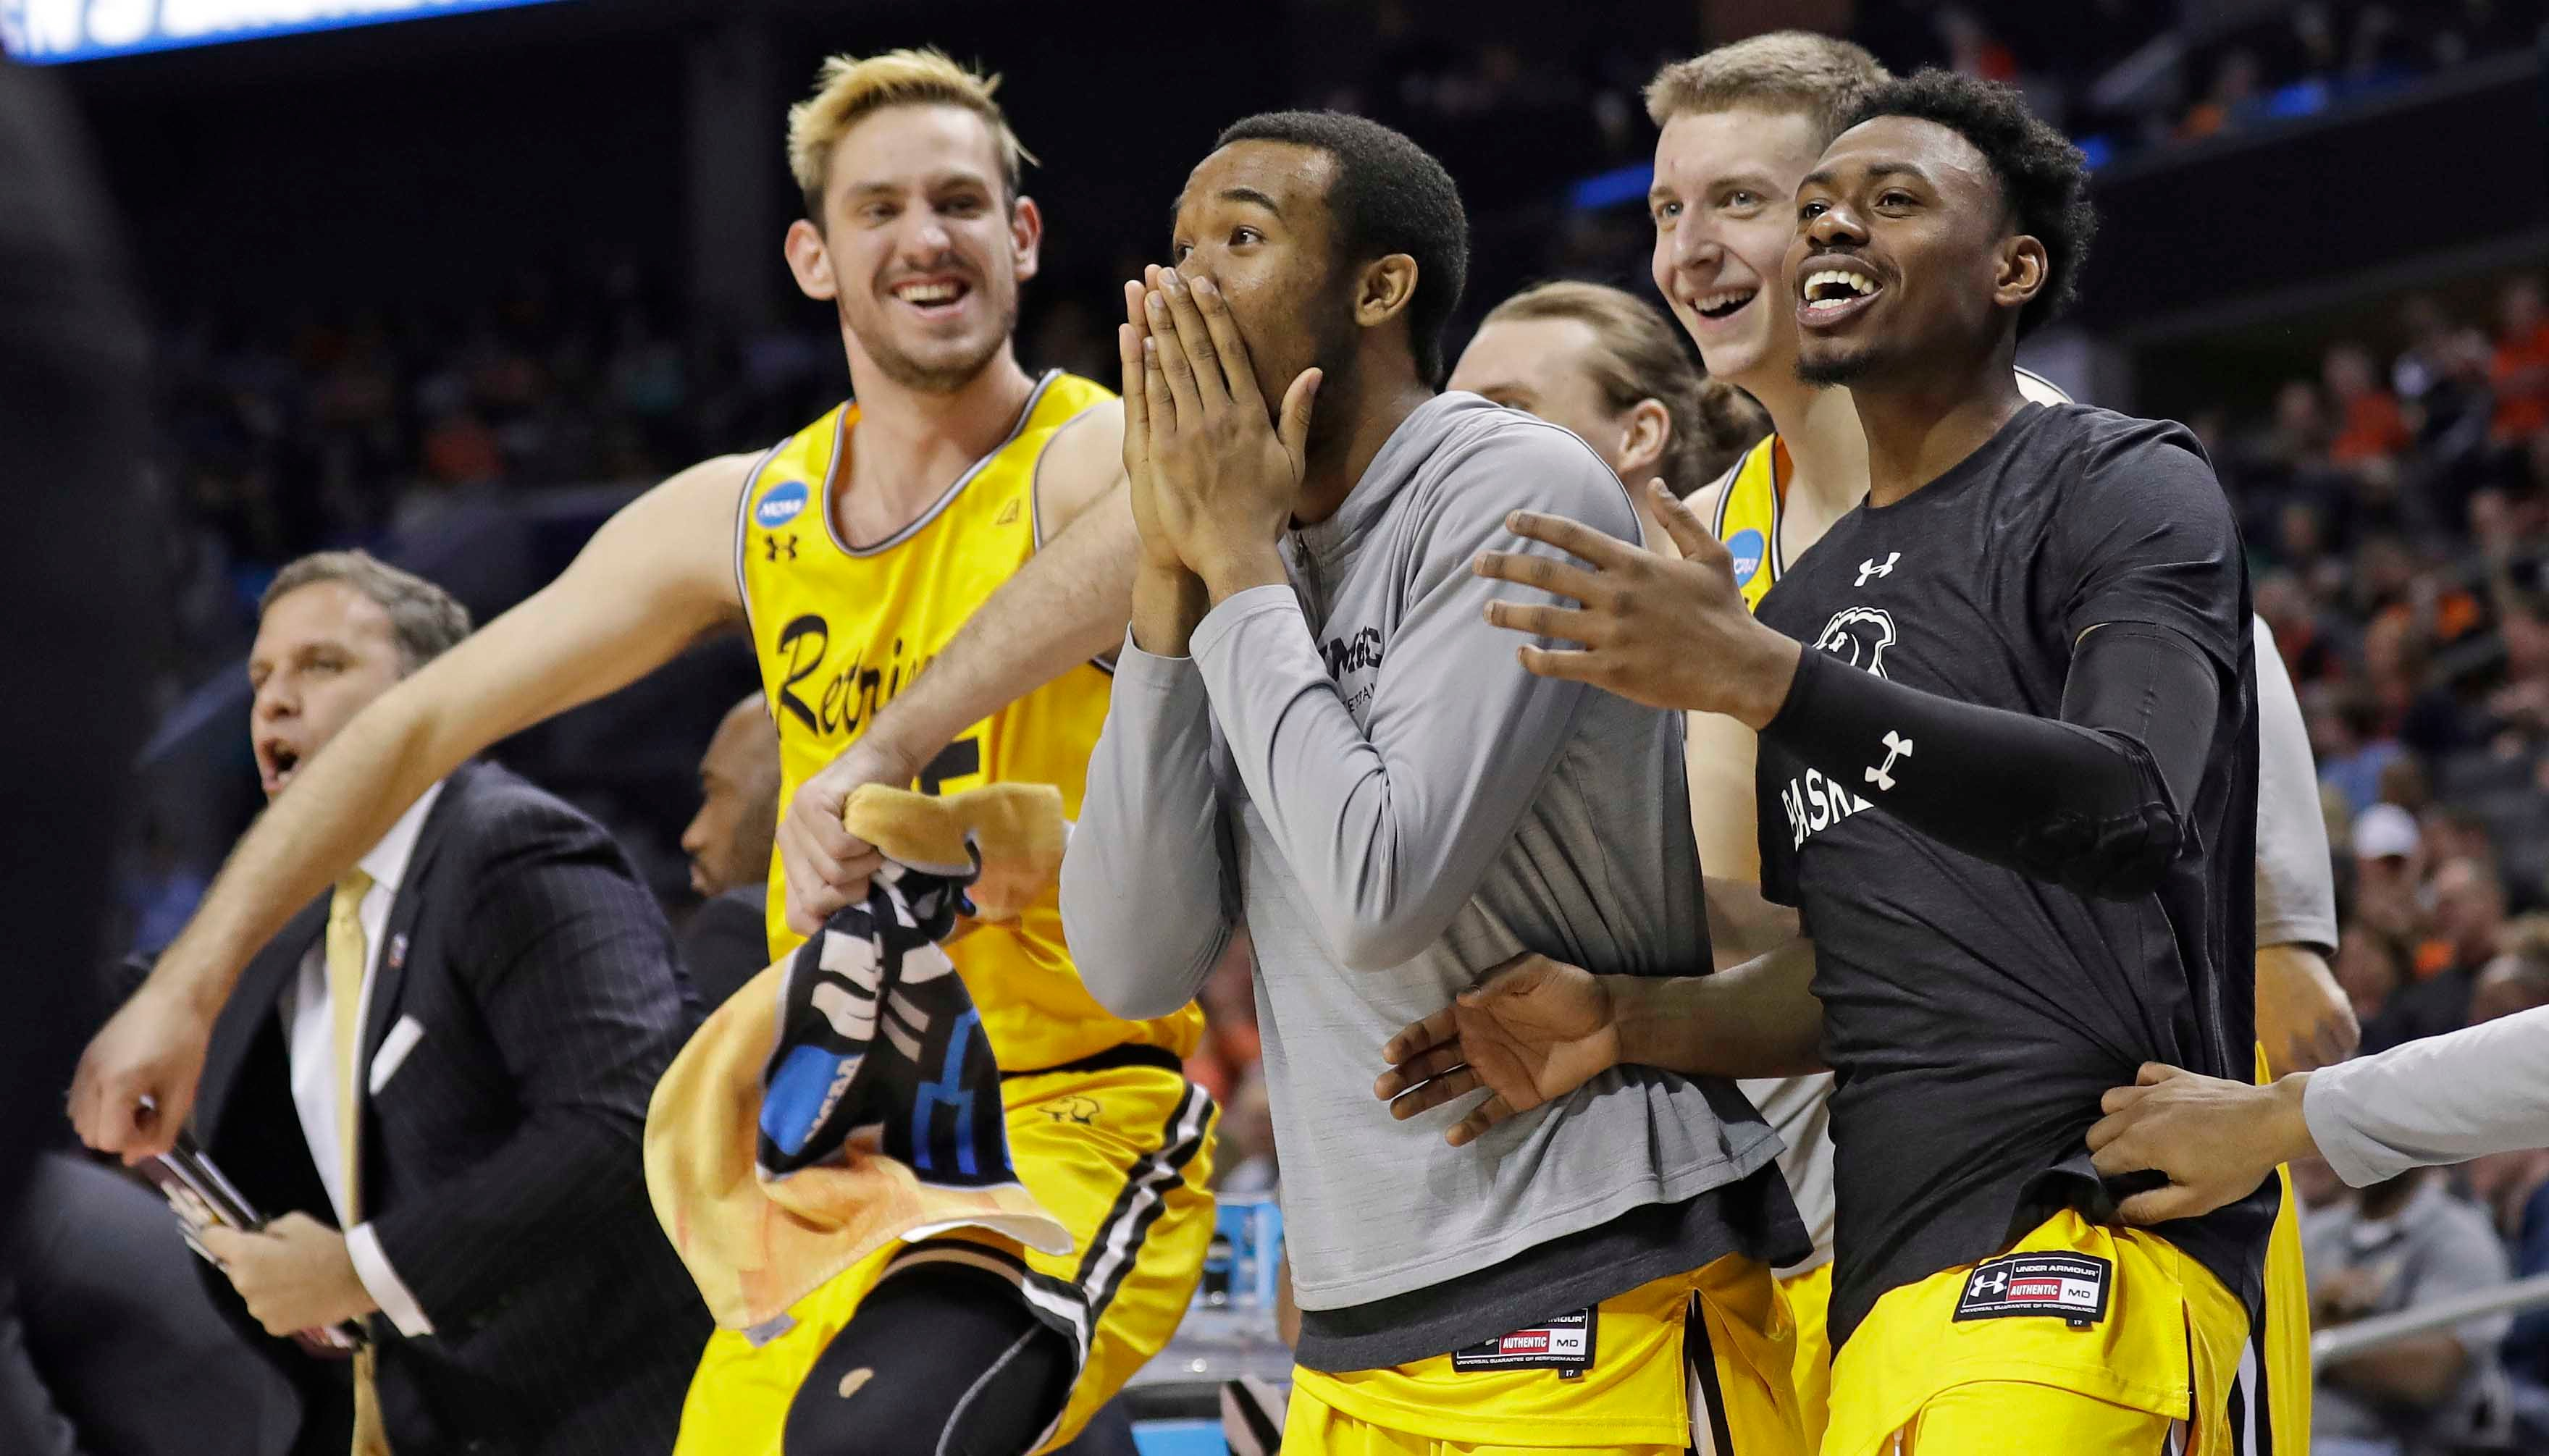 UMBC players celebrate a teammate's basket against Virginia during the second half of a first-round game in the NCAA men's college basketball tournament in Charlotte, N.C., Friday, March 16, 2018. (Source: AP Photo/Gerry Broome)